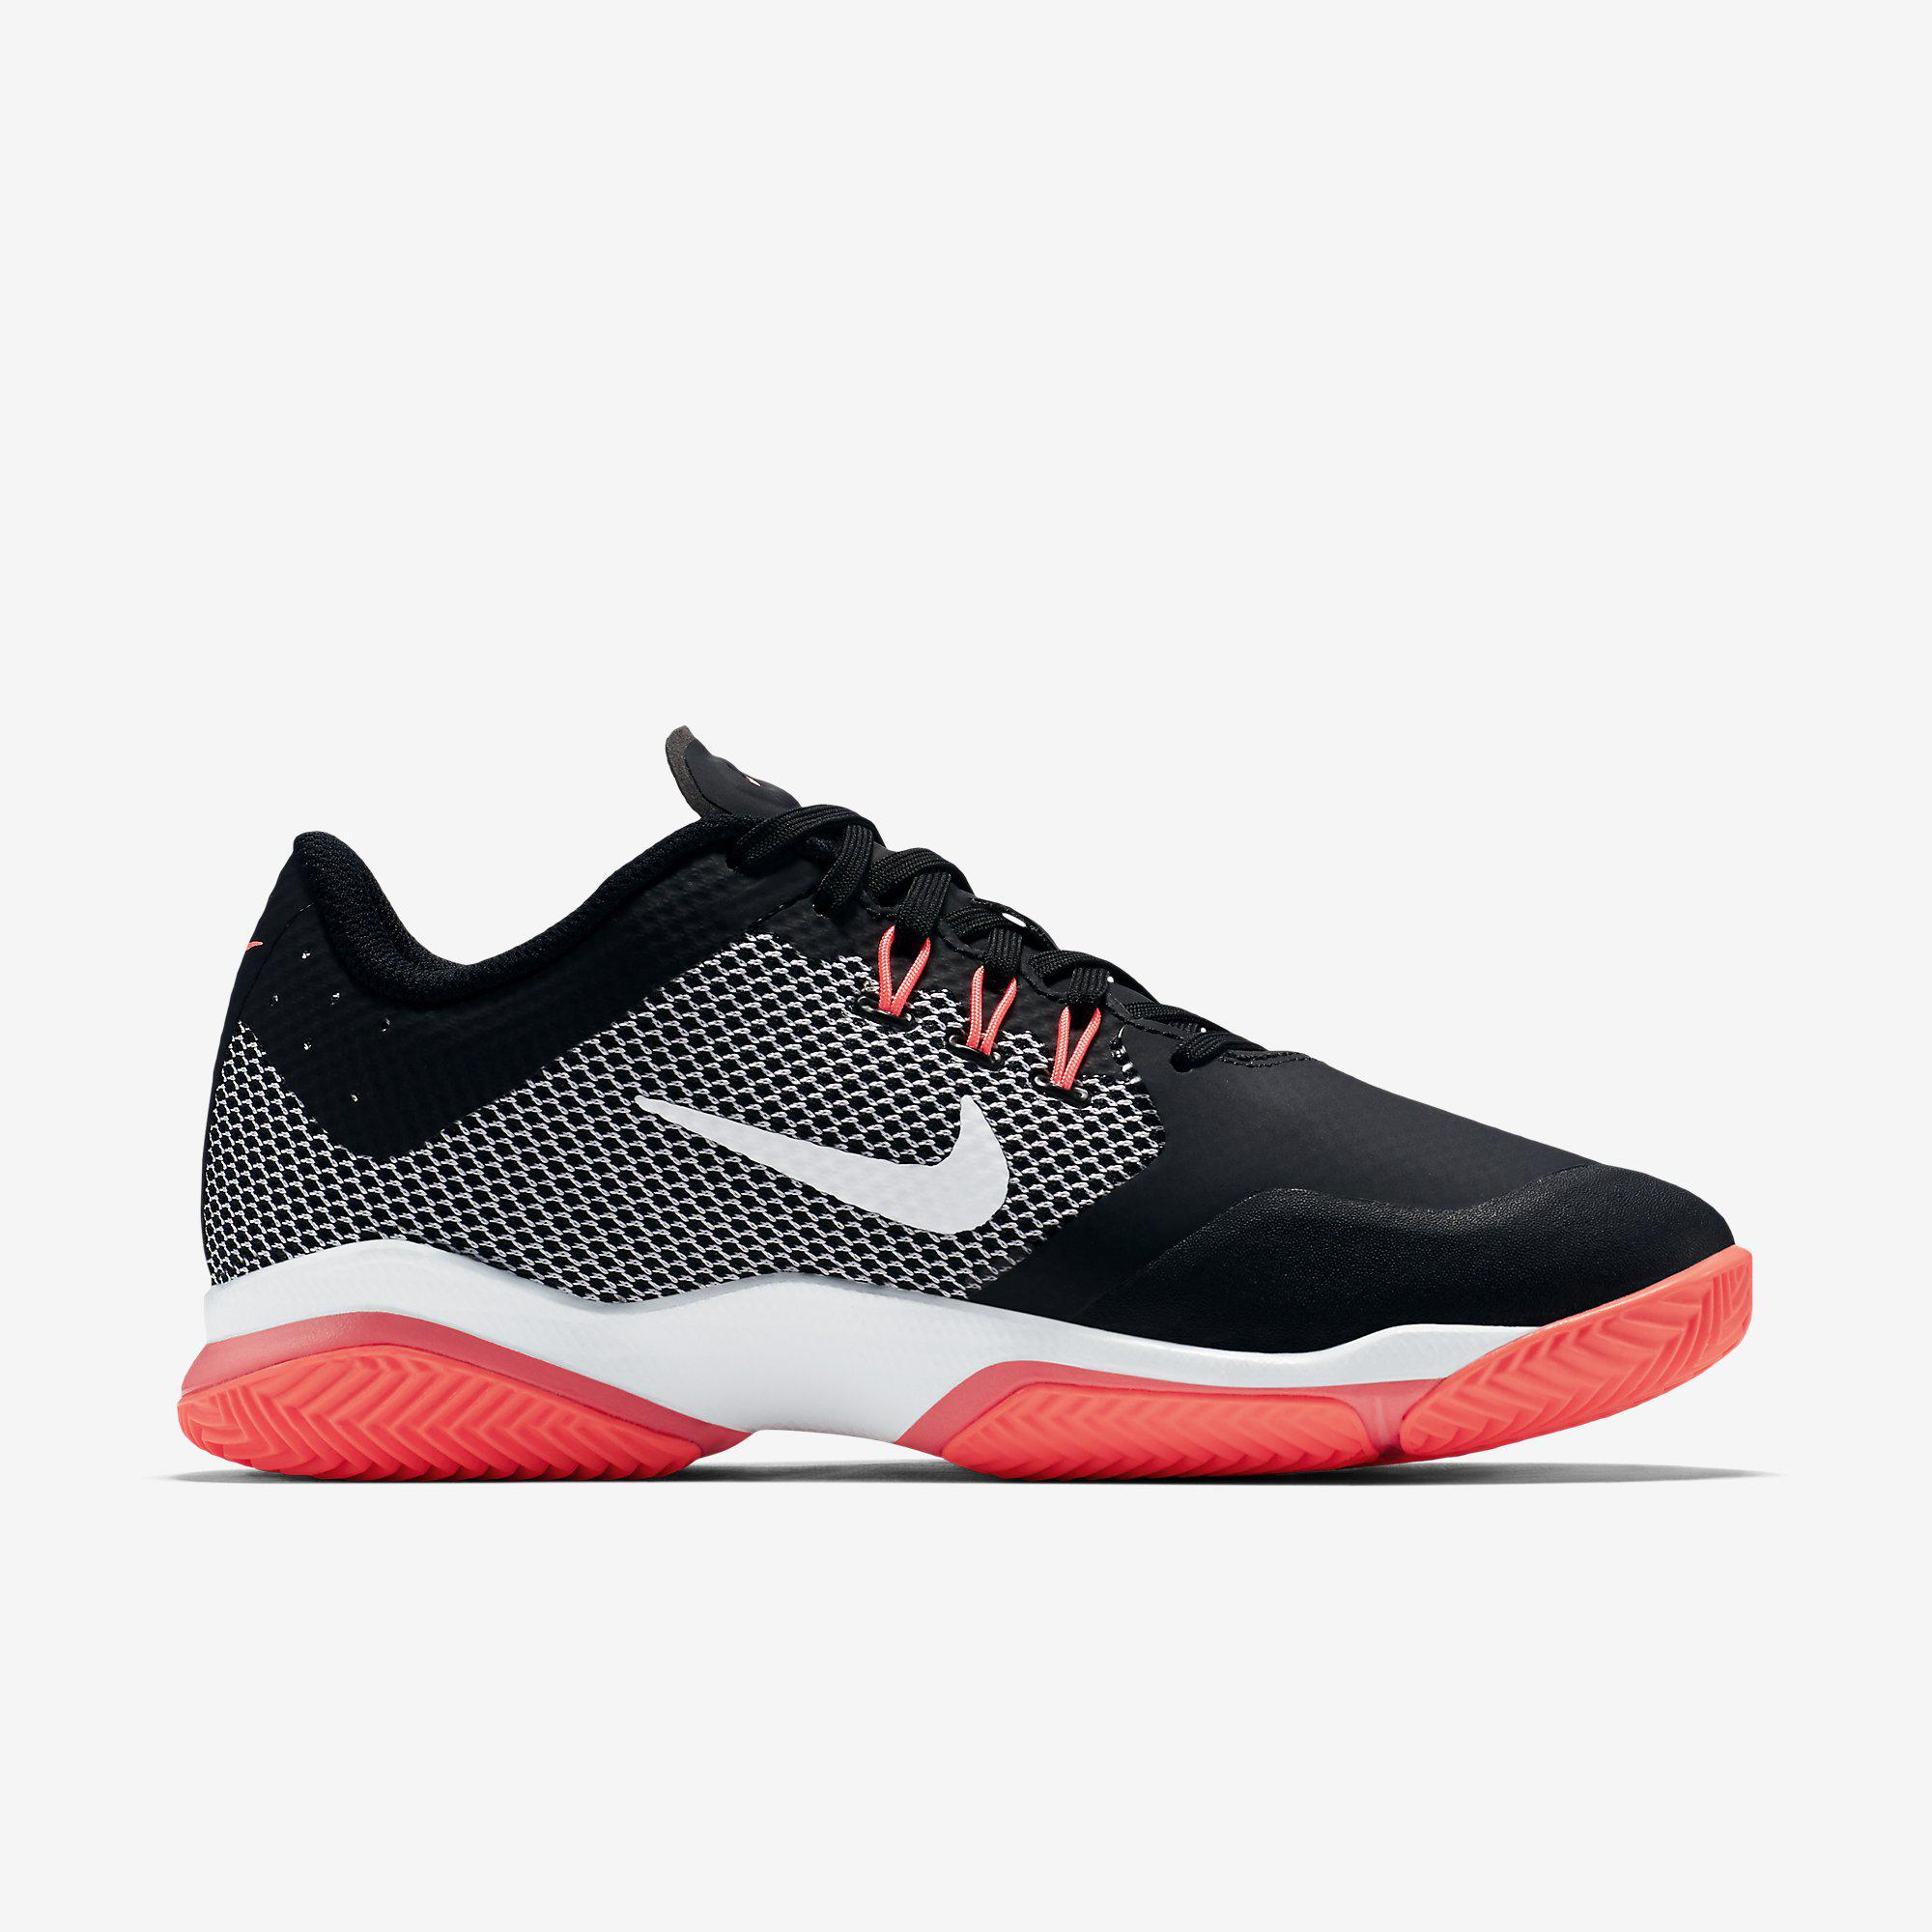 nike womens air zoom ultra clay court tennis shoes black. Black Bedroom Furniture Sets. Home Design Ideas